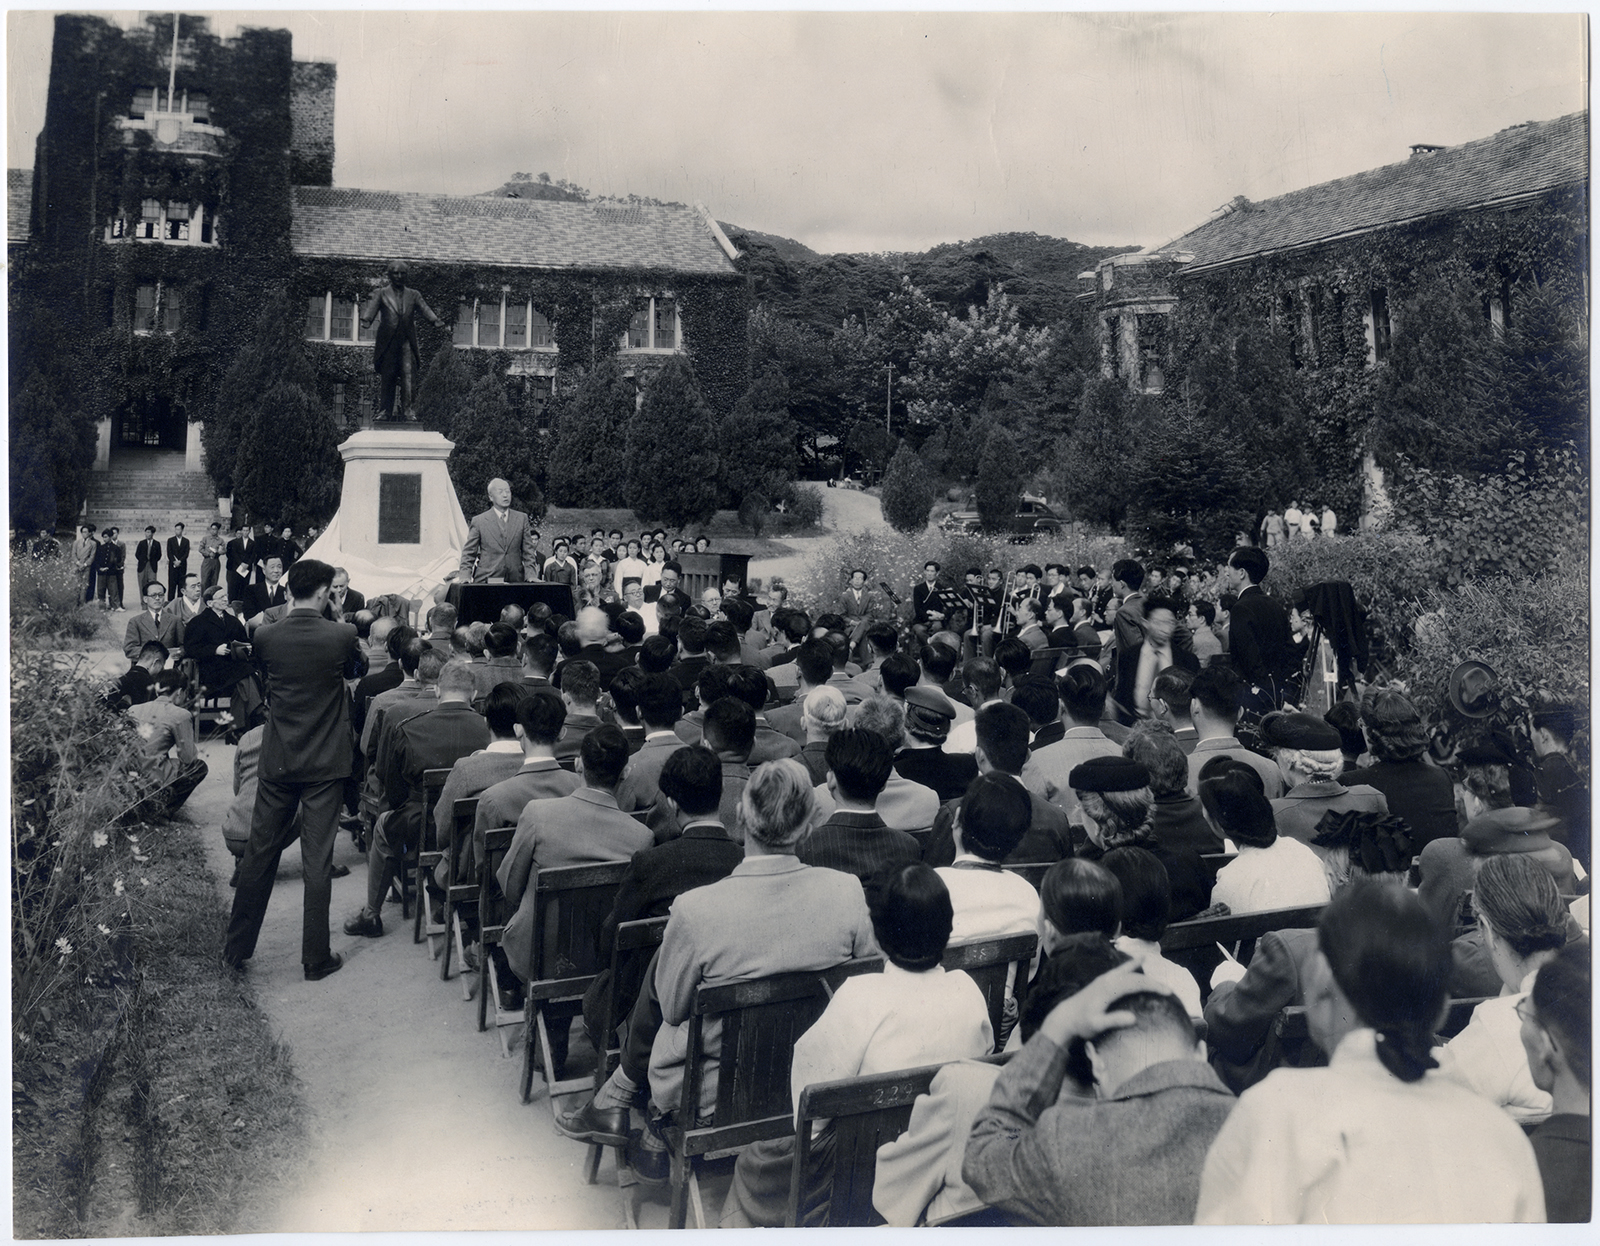 A statue of the late Dr. Horace Grant Underwood, the first Protestant missionary to Korea and founder of Chosen Christian College, is unveiled on the college grounds in Seoul, South Korea, circa October 1955. Speaking from the podium in front of the statue is Dr. Syngman Rhee, the first president of South Korea.  RNS archive photo